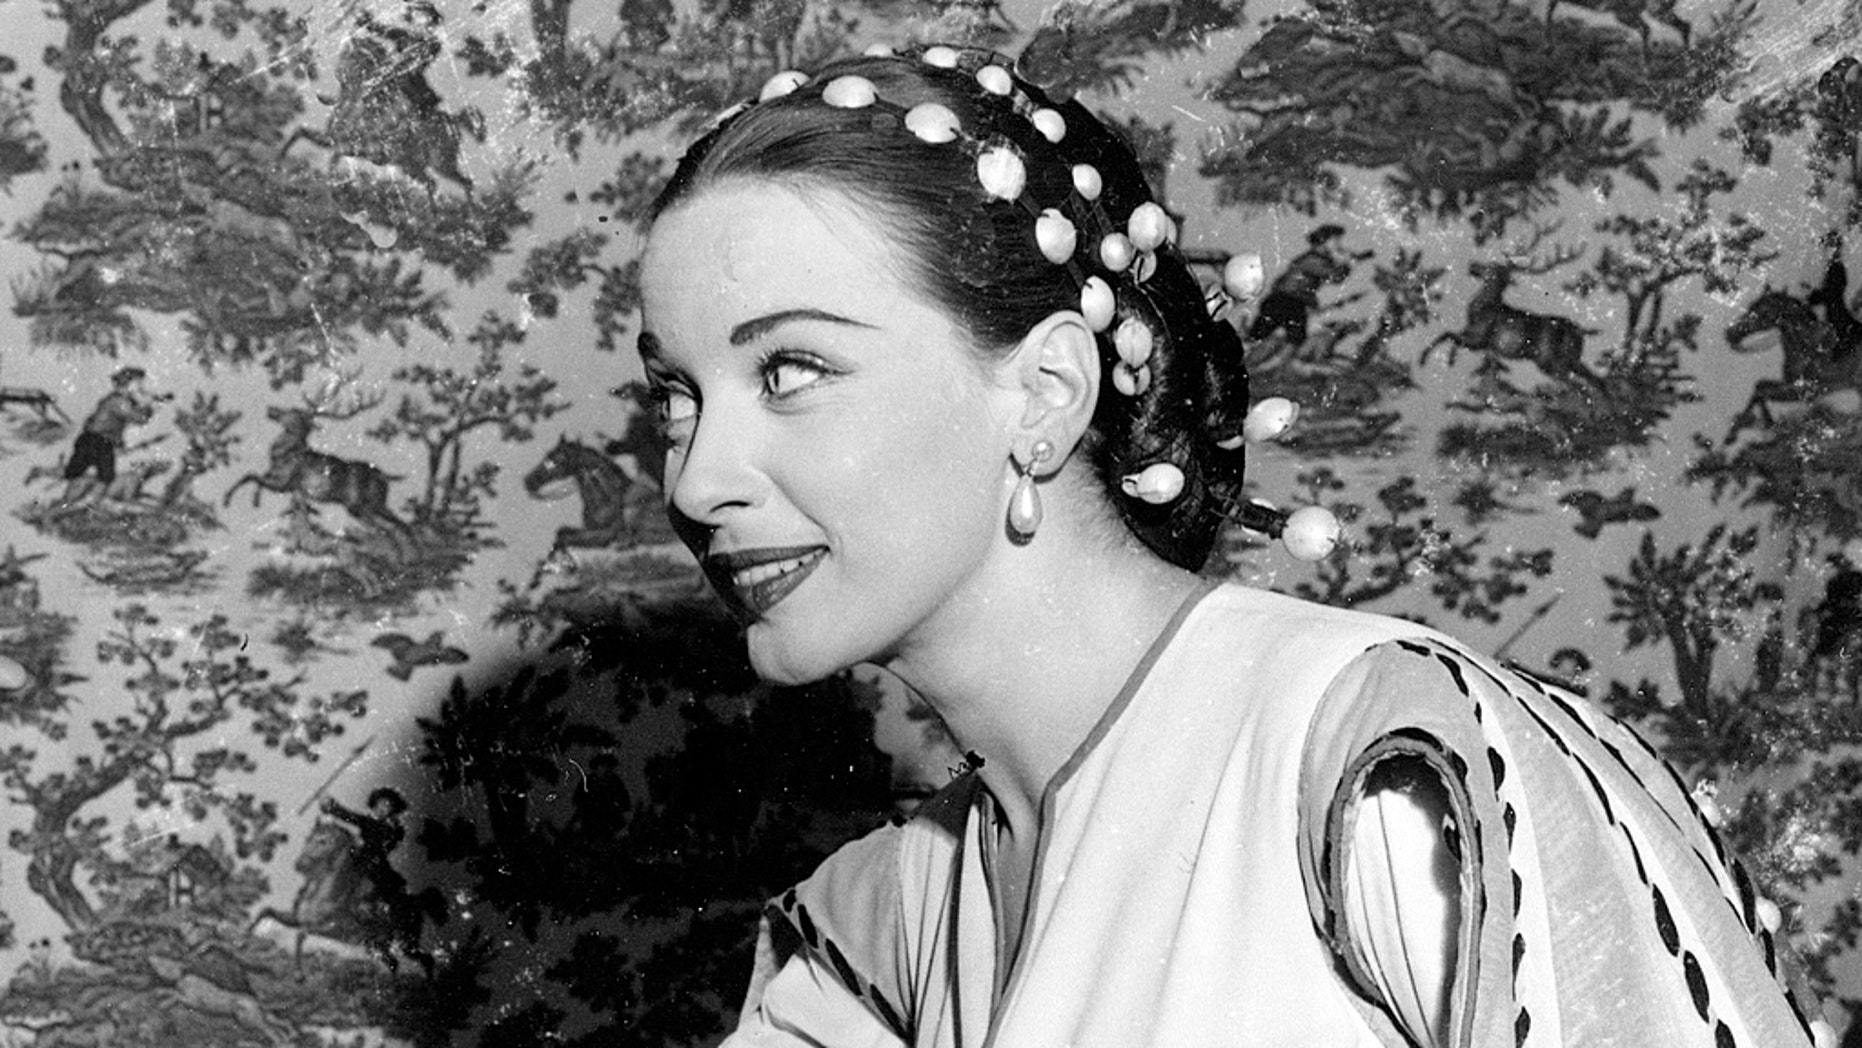 Patricia Morison, pictured here in 1949, starred in films alongside Spencer Tracy and Katharine Hepburn.